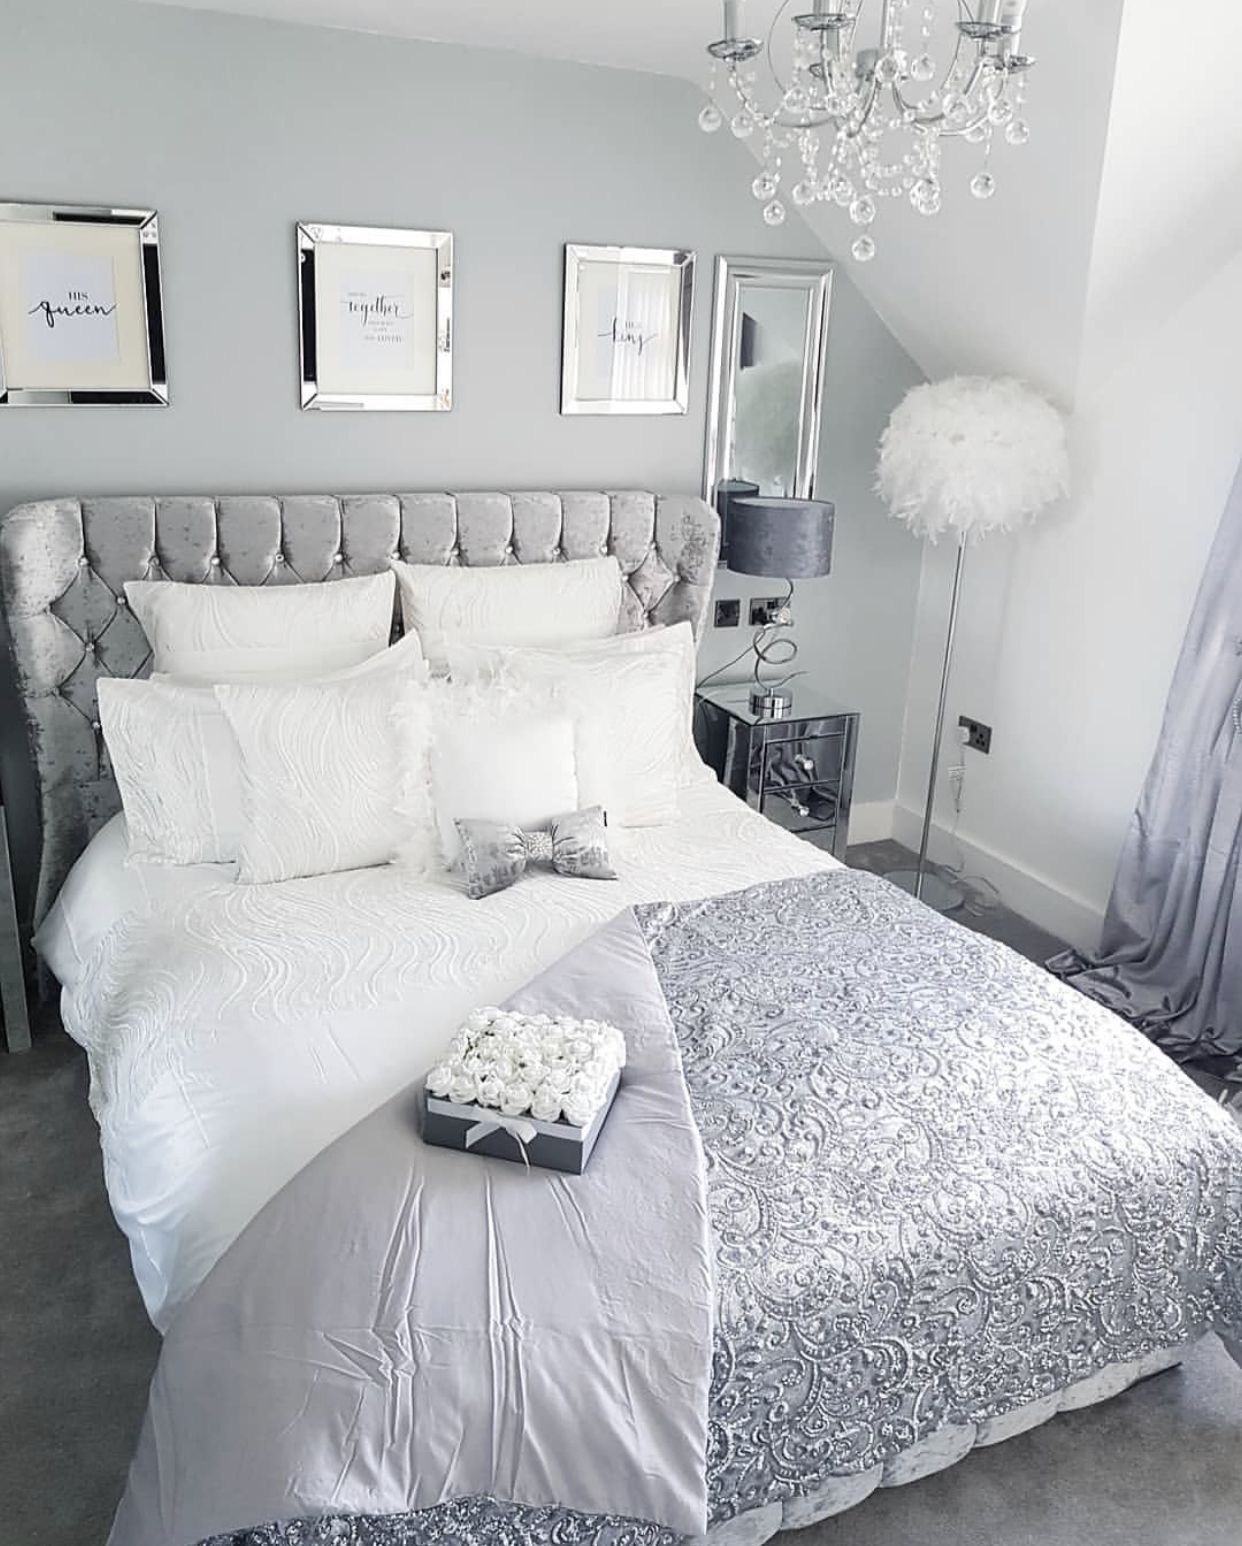 Charming And Beautiful Bedroom Ideas For Women 2020 Classy Bedroom Apartment Bedroom Decor Woman Bedroom Grey decor bedroom ideas